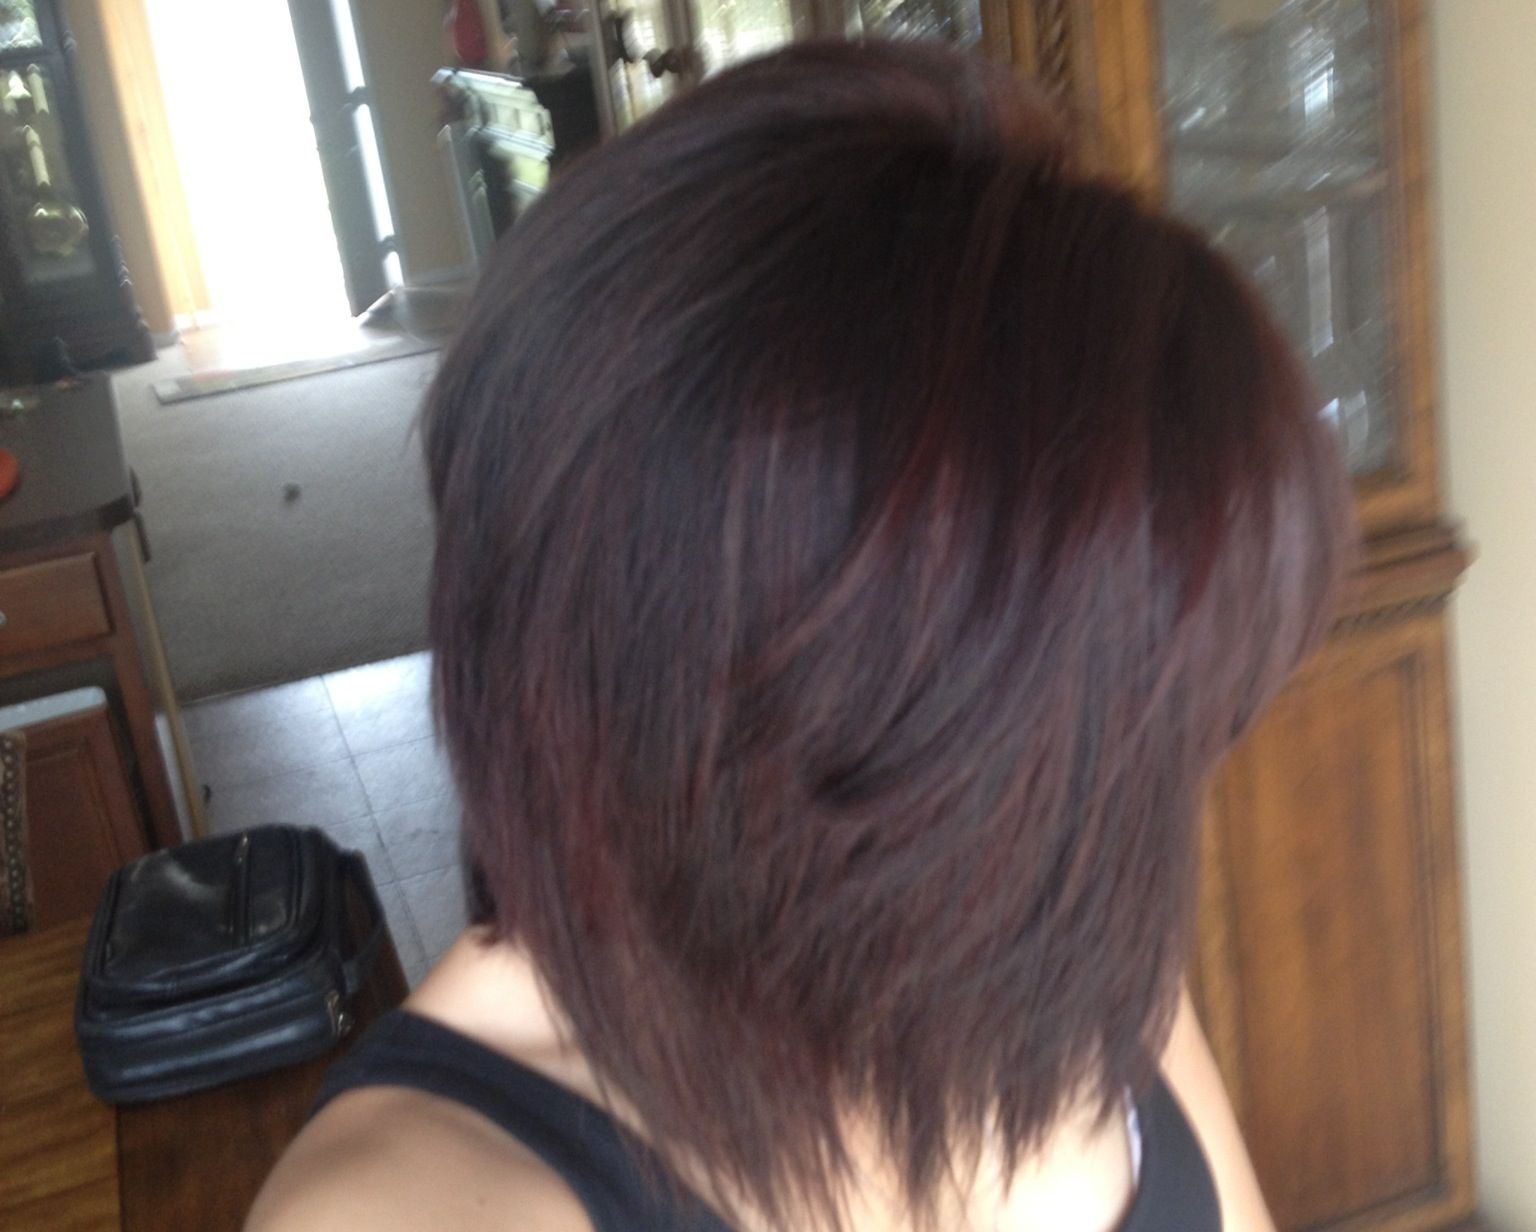 Red Violet Highlights With Medium Level 5 Brown Base My New Color I